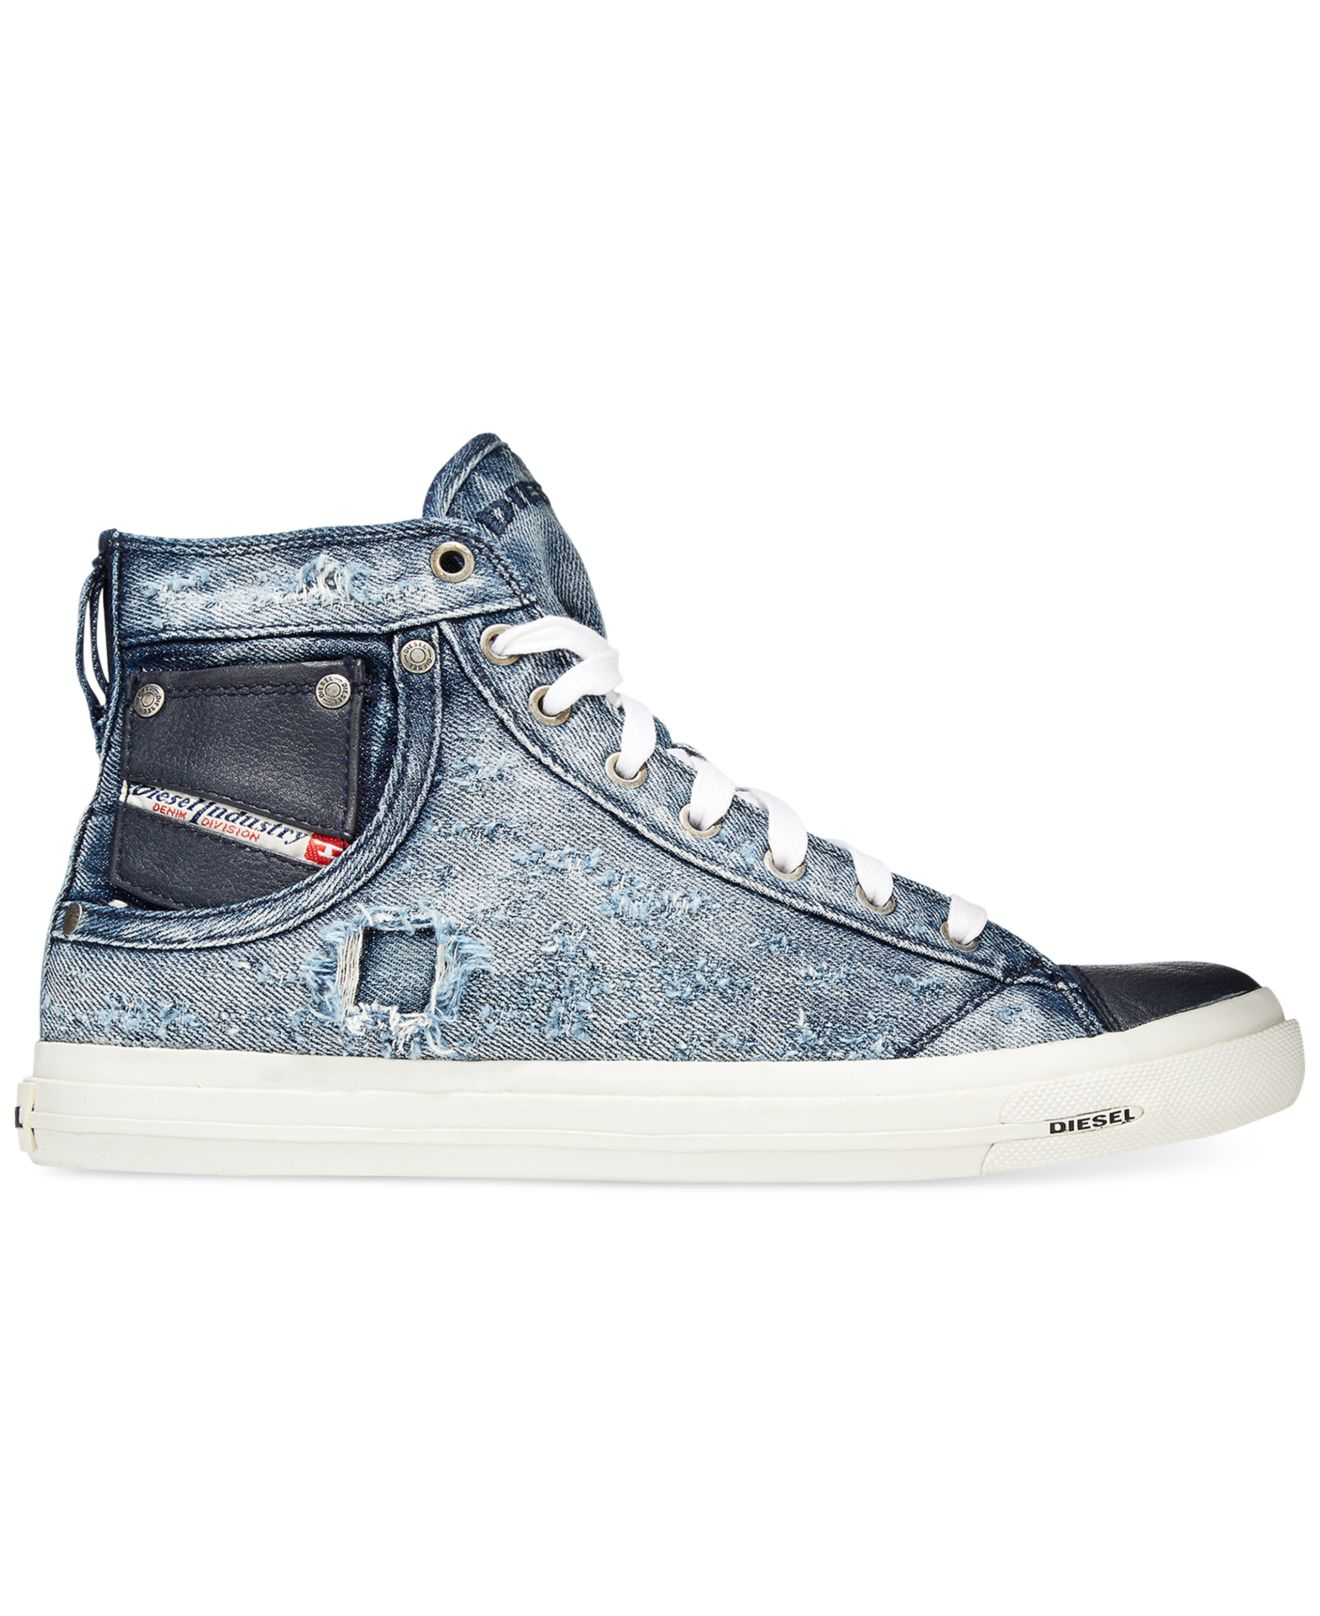 Diesel Exposure hi-tops Inexpensive cheap online genuine sale purchase free shipping wide range of for sale wholesale price iSExpcI7IA